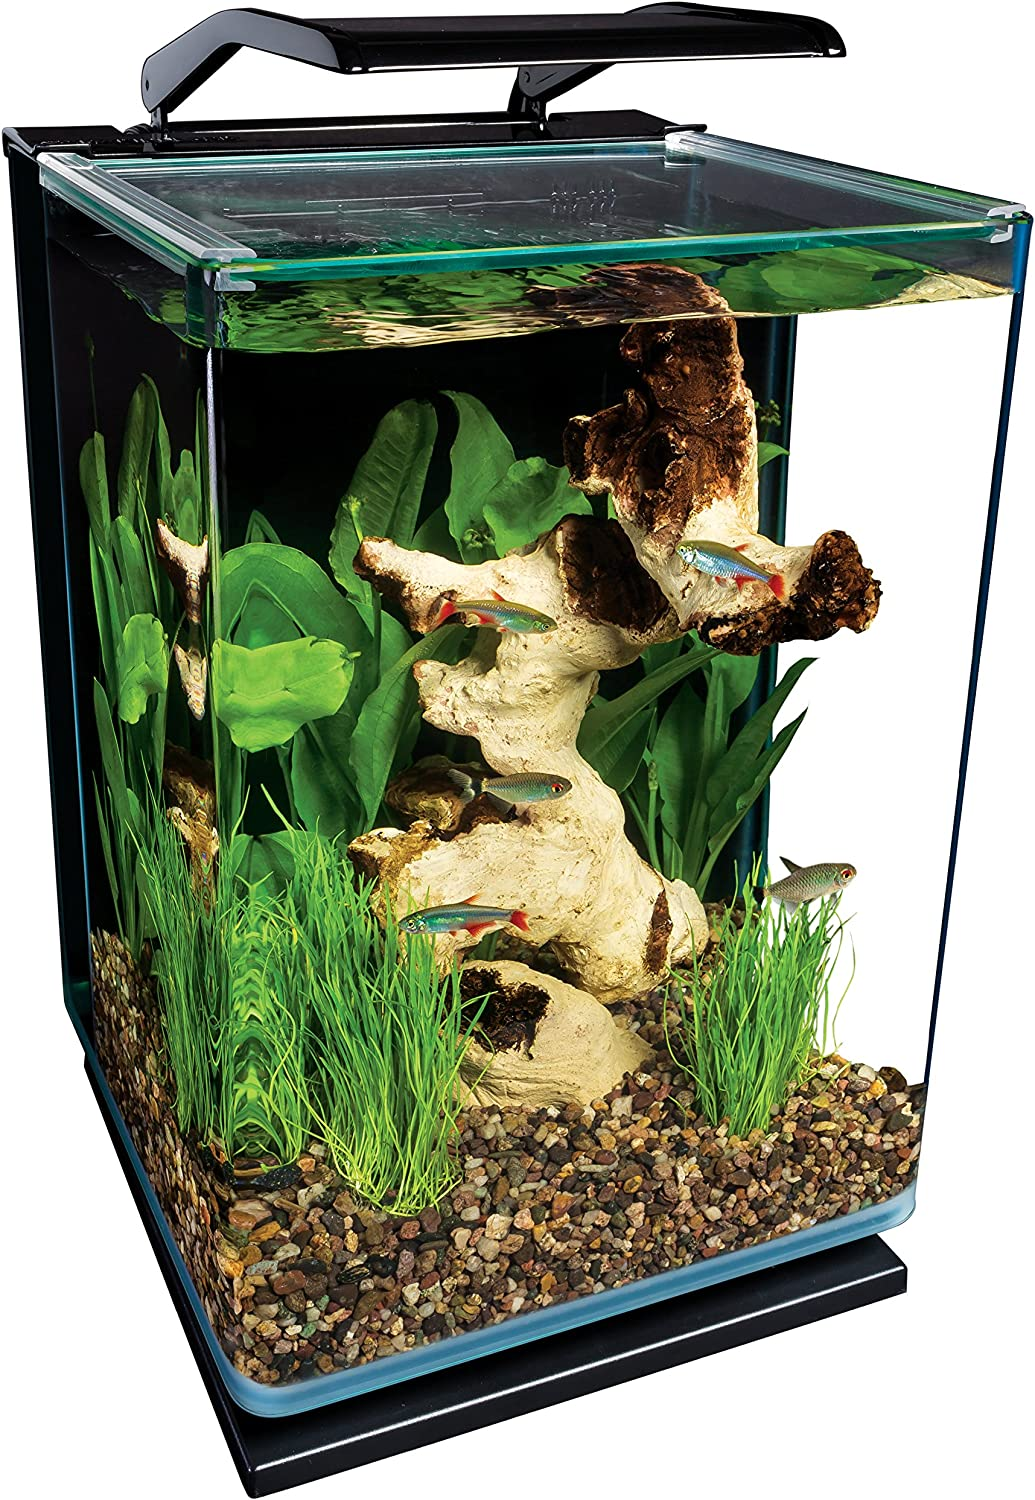 Marineland 5 Gallon Portrait Aquarium Kit